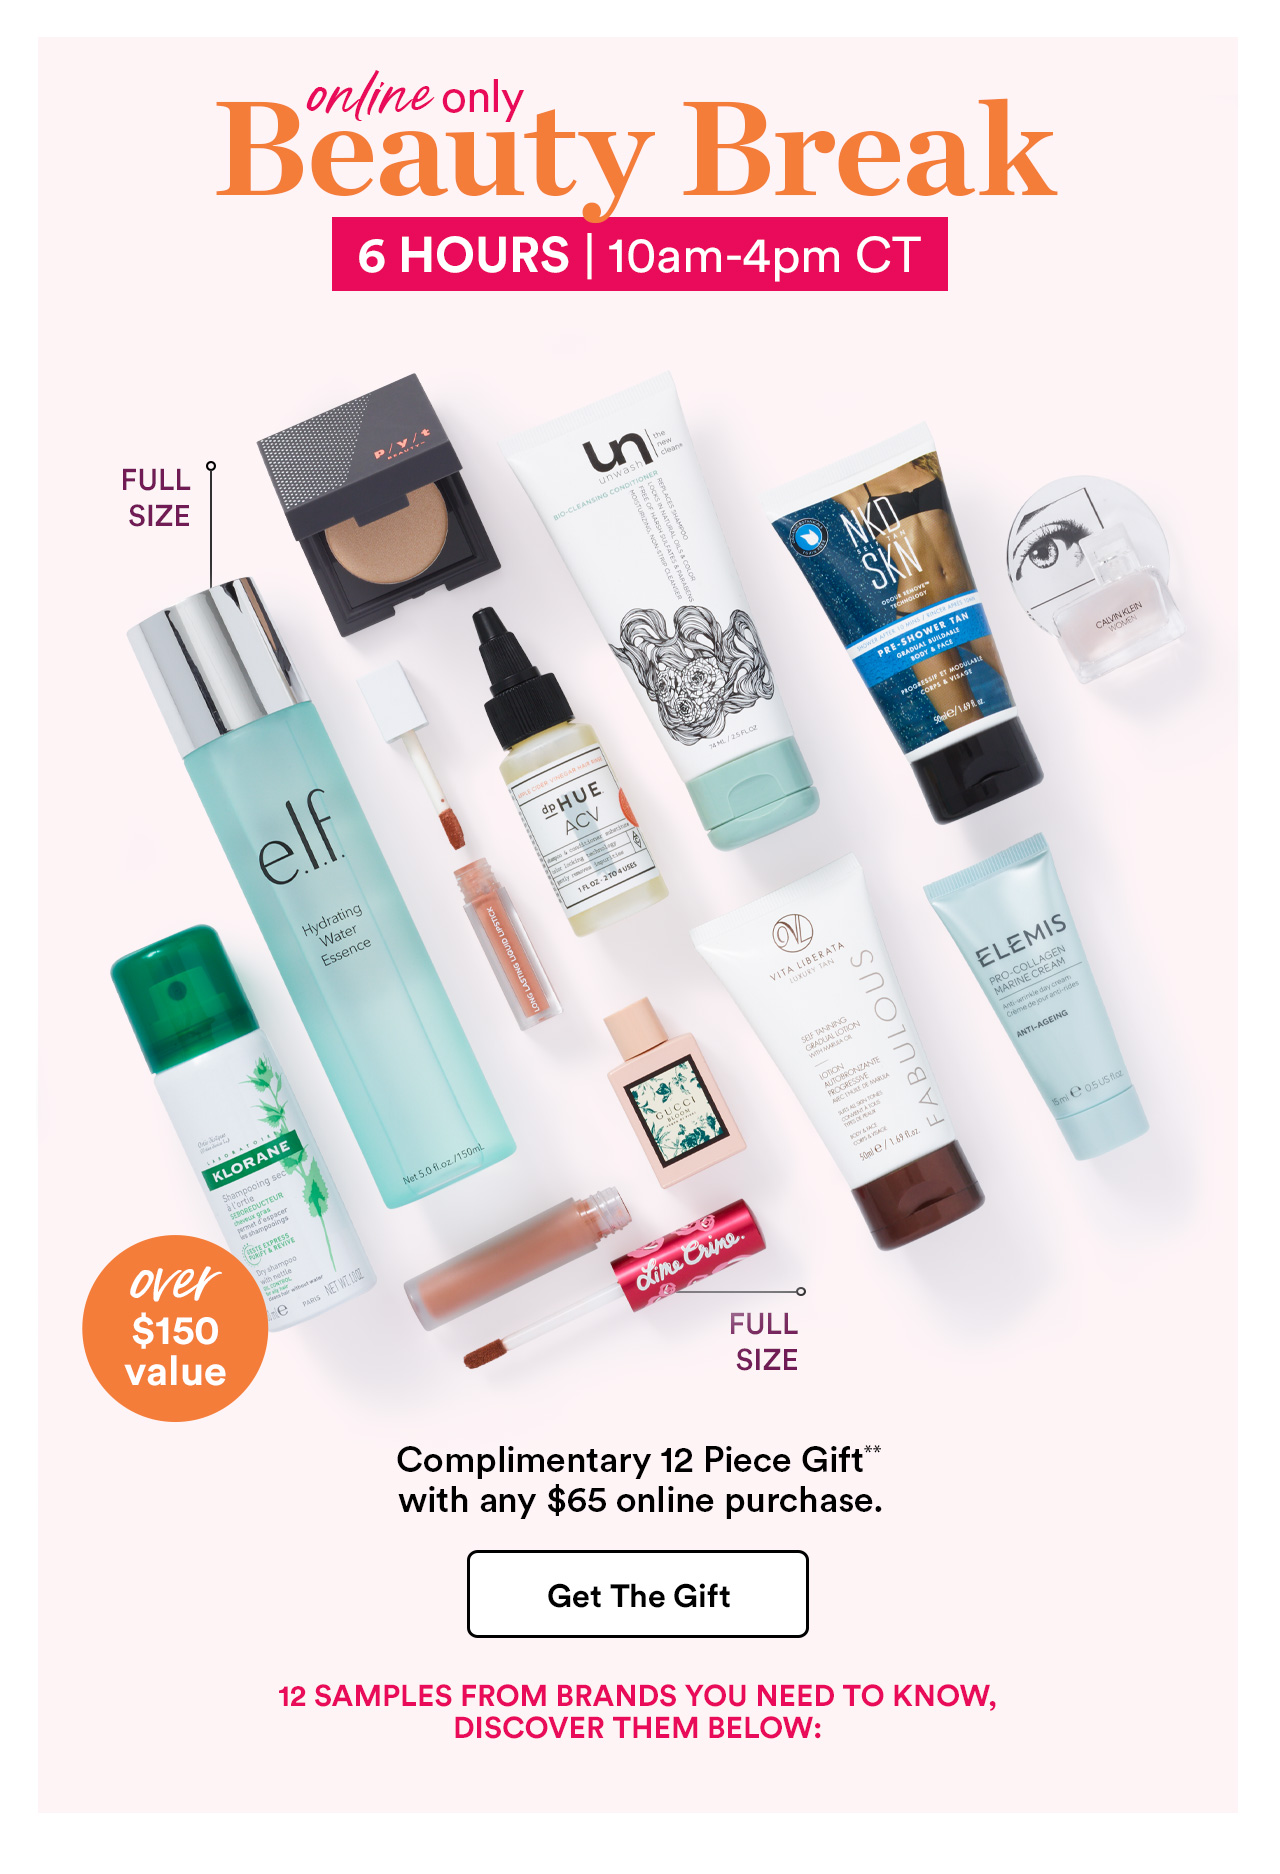 photo regarding Stage Stores Printable Coupons called Incredibly Warm* Ulta Double Reward Luggage importance Above $150 and Issue